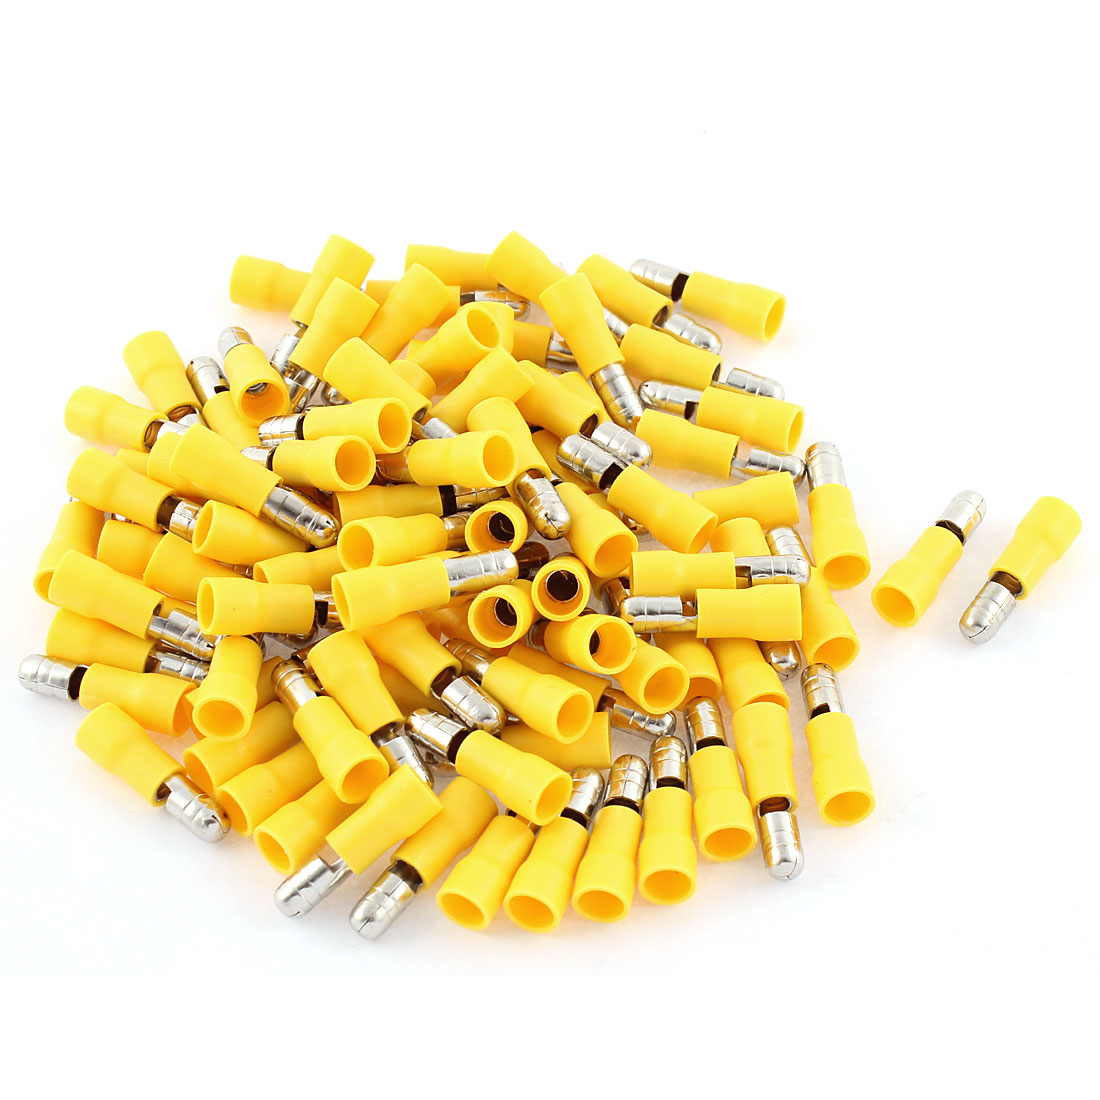 95Pcs 12-10 AWG Yellow Insulated Connector Male Crimp Terminals MPD5-195